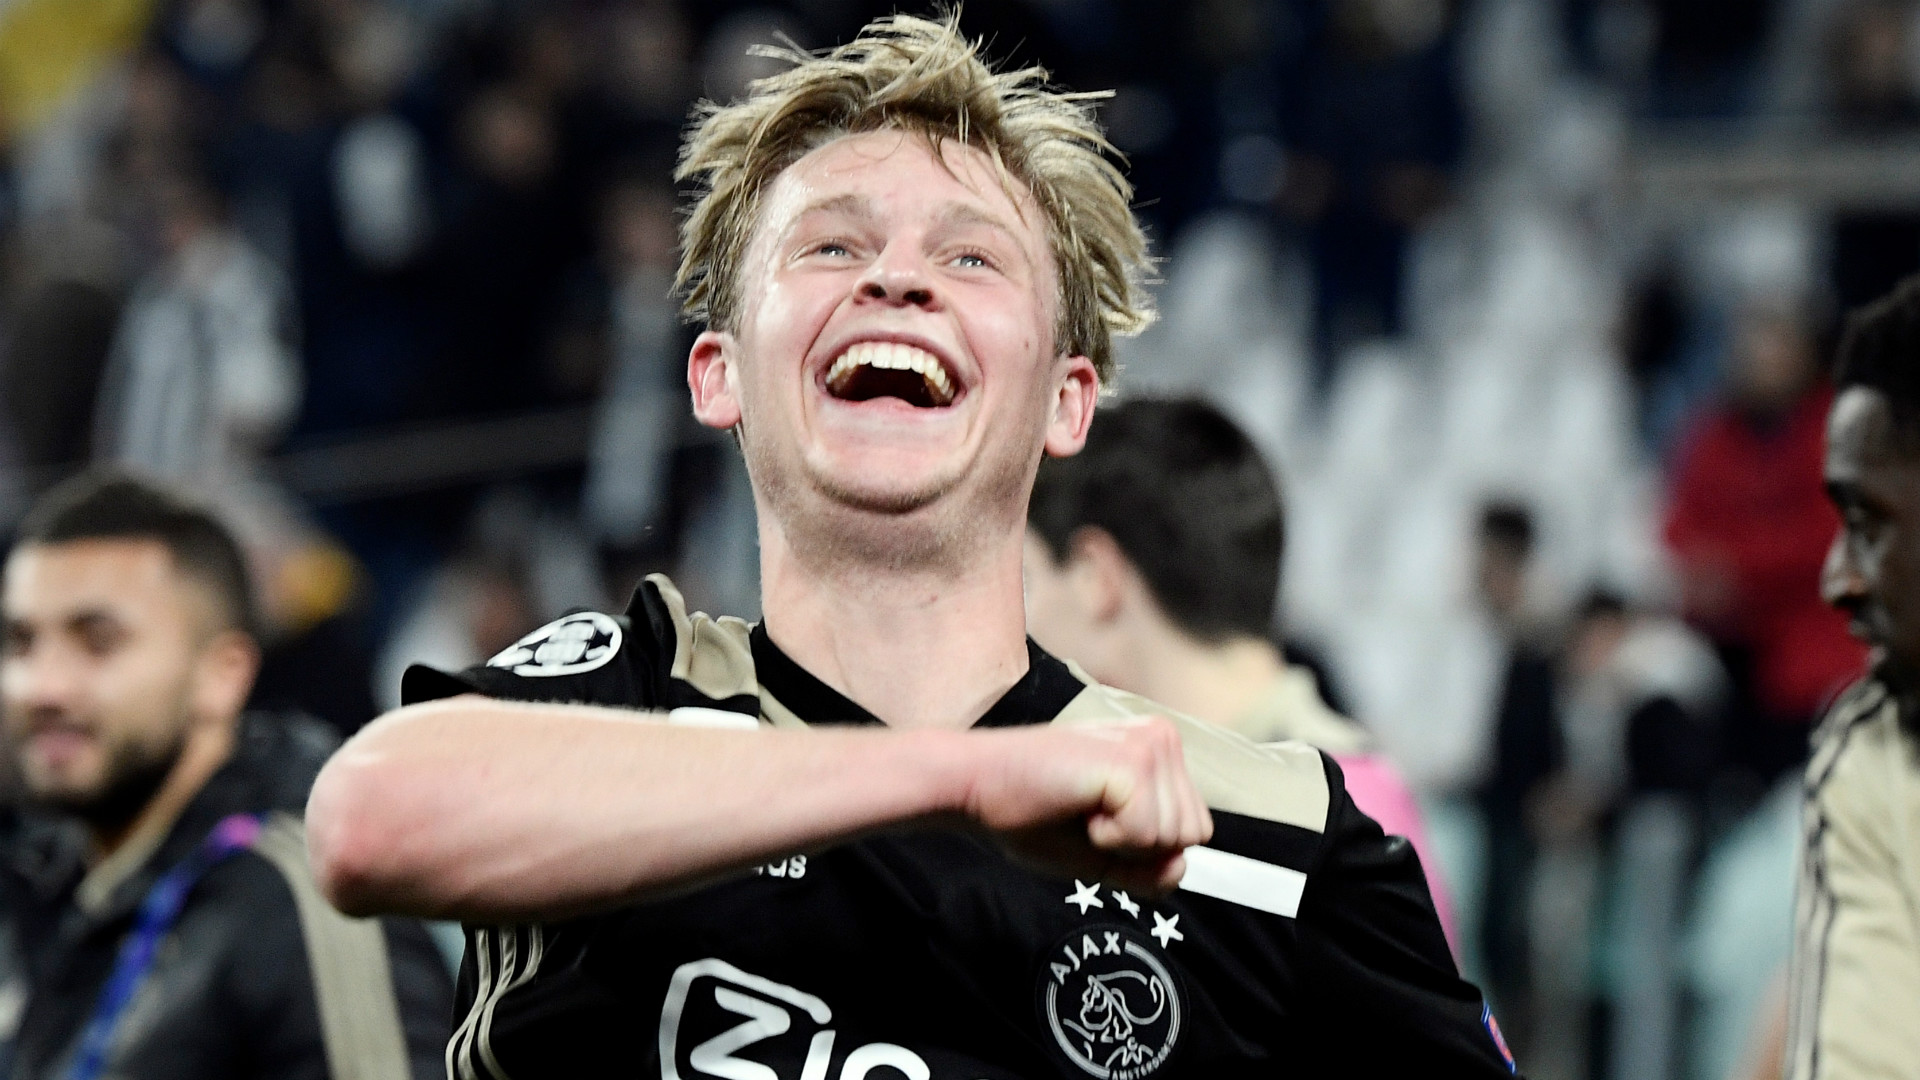 Paul Scholes' son warns Matthijs de Ligt not to join Manchester United